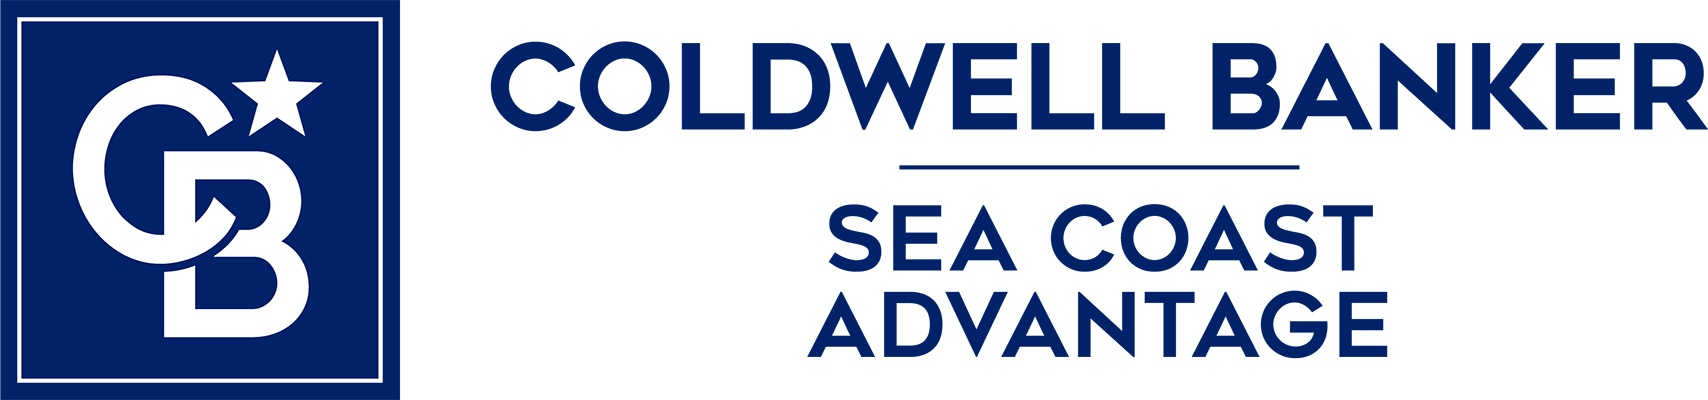 Terry Thompkins - Coldwell Banker Sea Coast Advantage Realty Logo